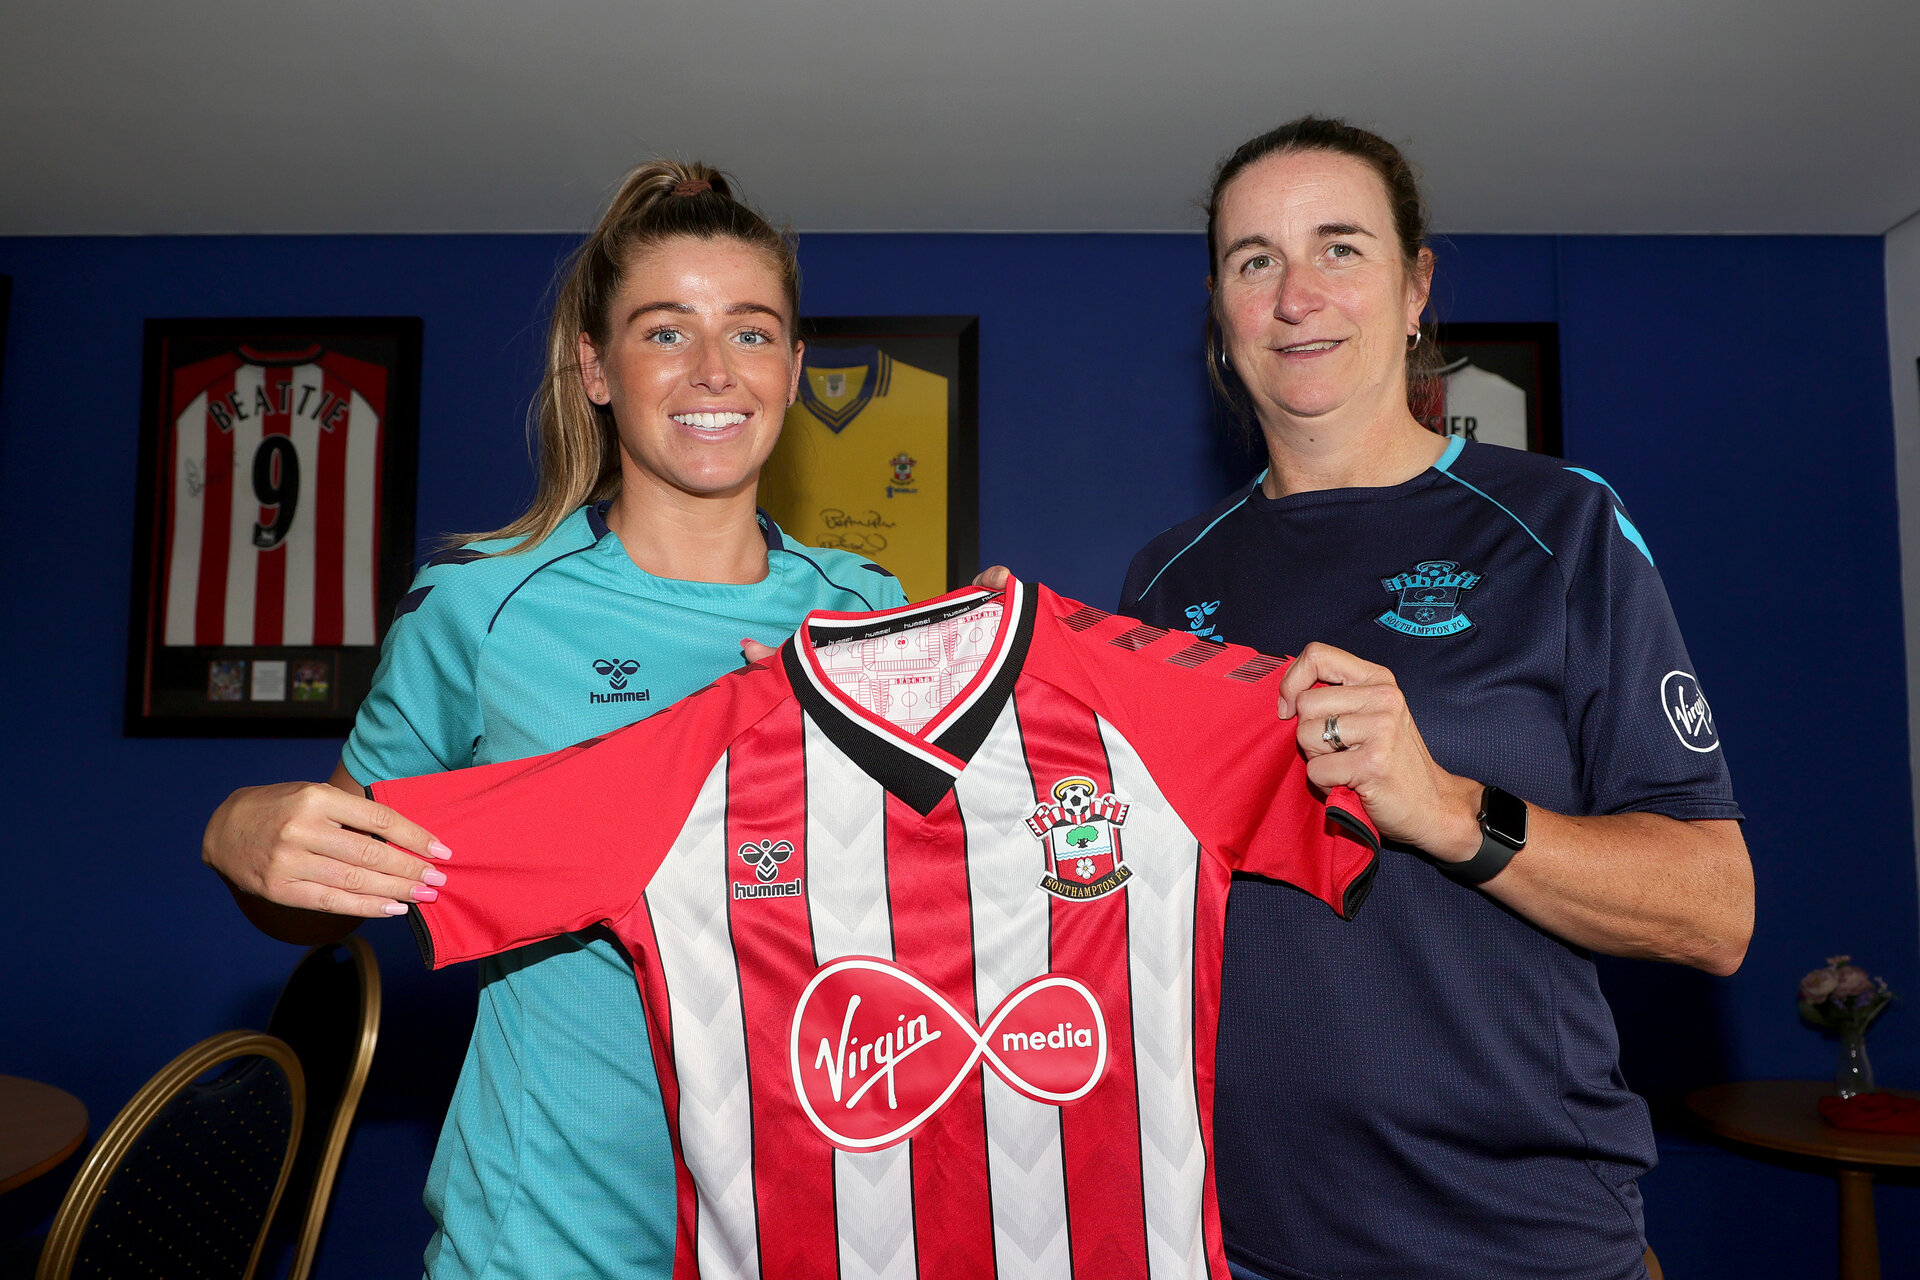 SOUTHAMPTON, ENGLAND - JULY 29: Ciara Sherwood(L) and Marieanne Spacey-Cale(R) signing a new contract with Southampton Women's team photographed at Snows Stadium on July 29, 2021 in Southampton, England. (Photo by Isabelle Field/Southampton FC via Getty Images)